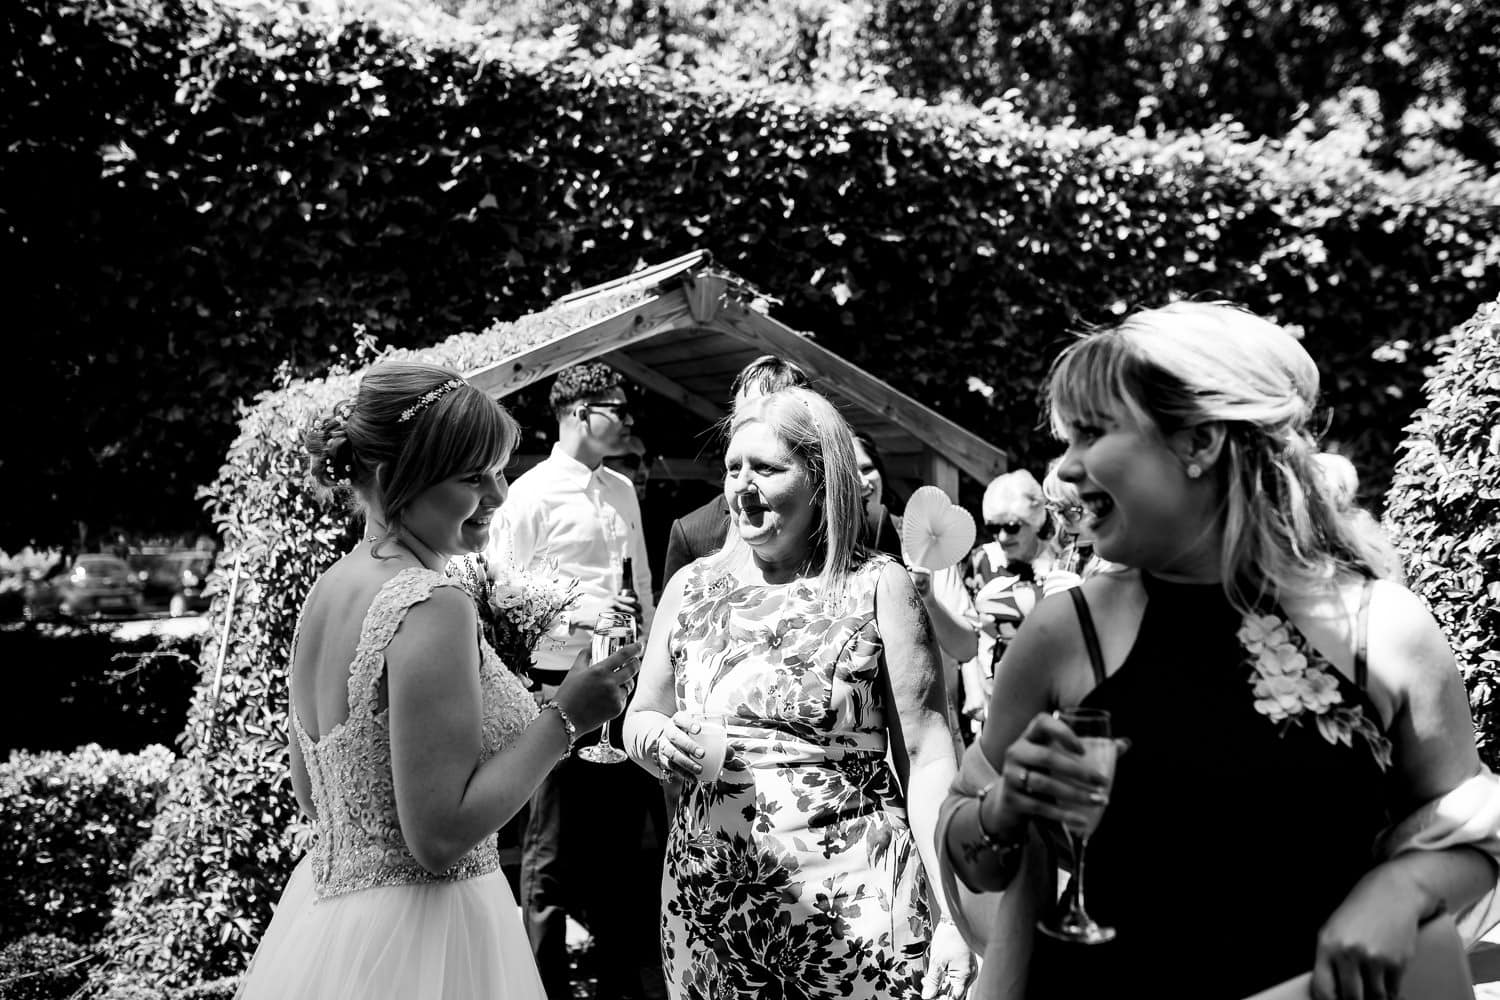 Guests laughing and sharing happy moments with the bride by Warwick House Wedding Photography